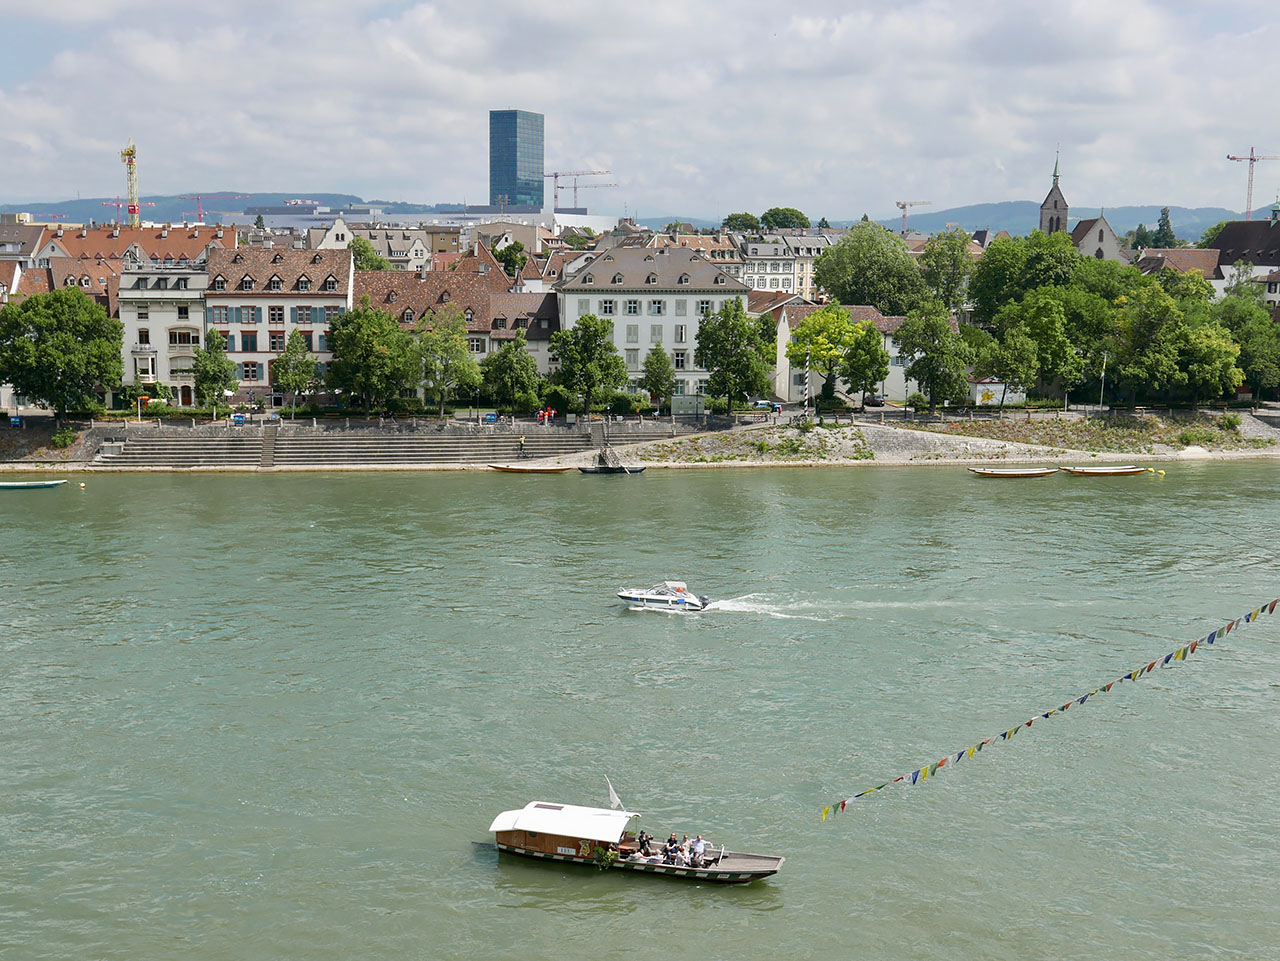 Cara Sharratt Travel - Basel, Switzerland - Taxi boat crossing the Rhine